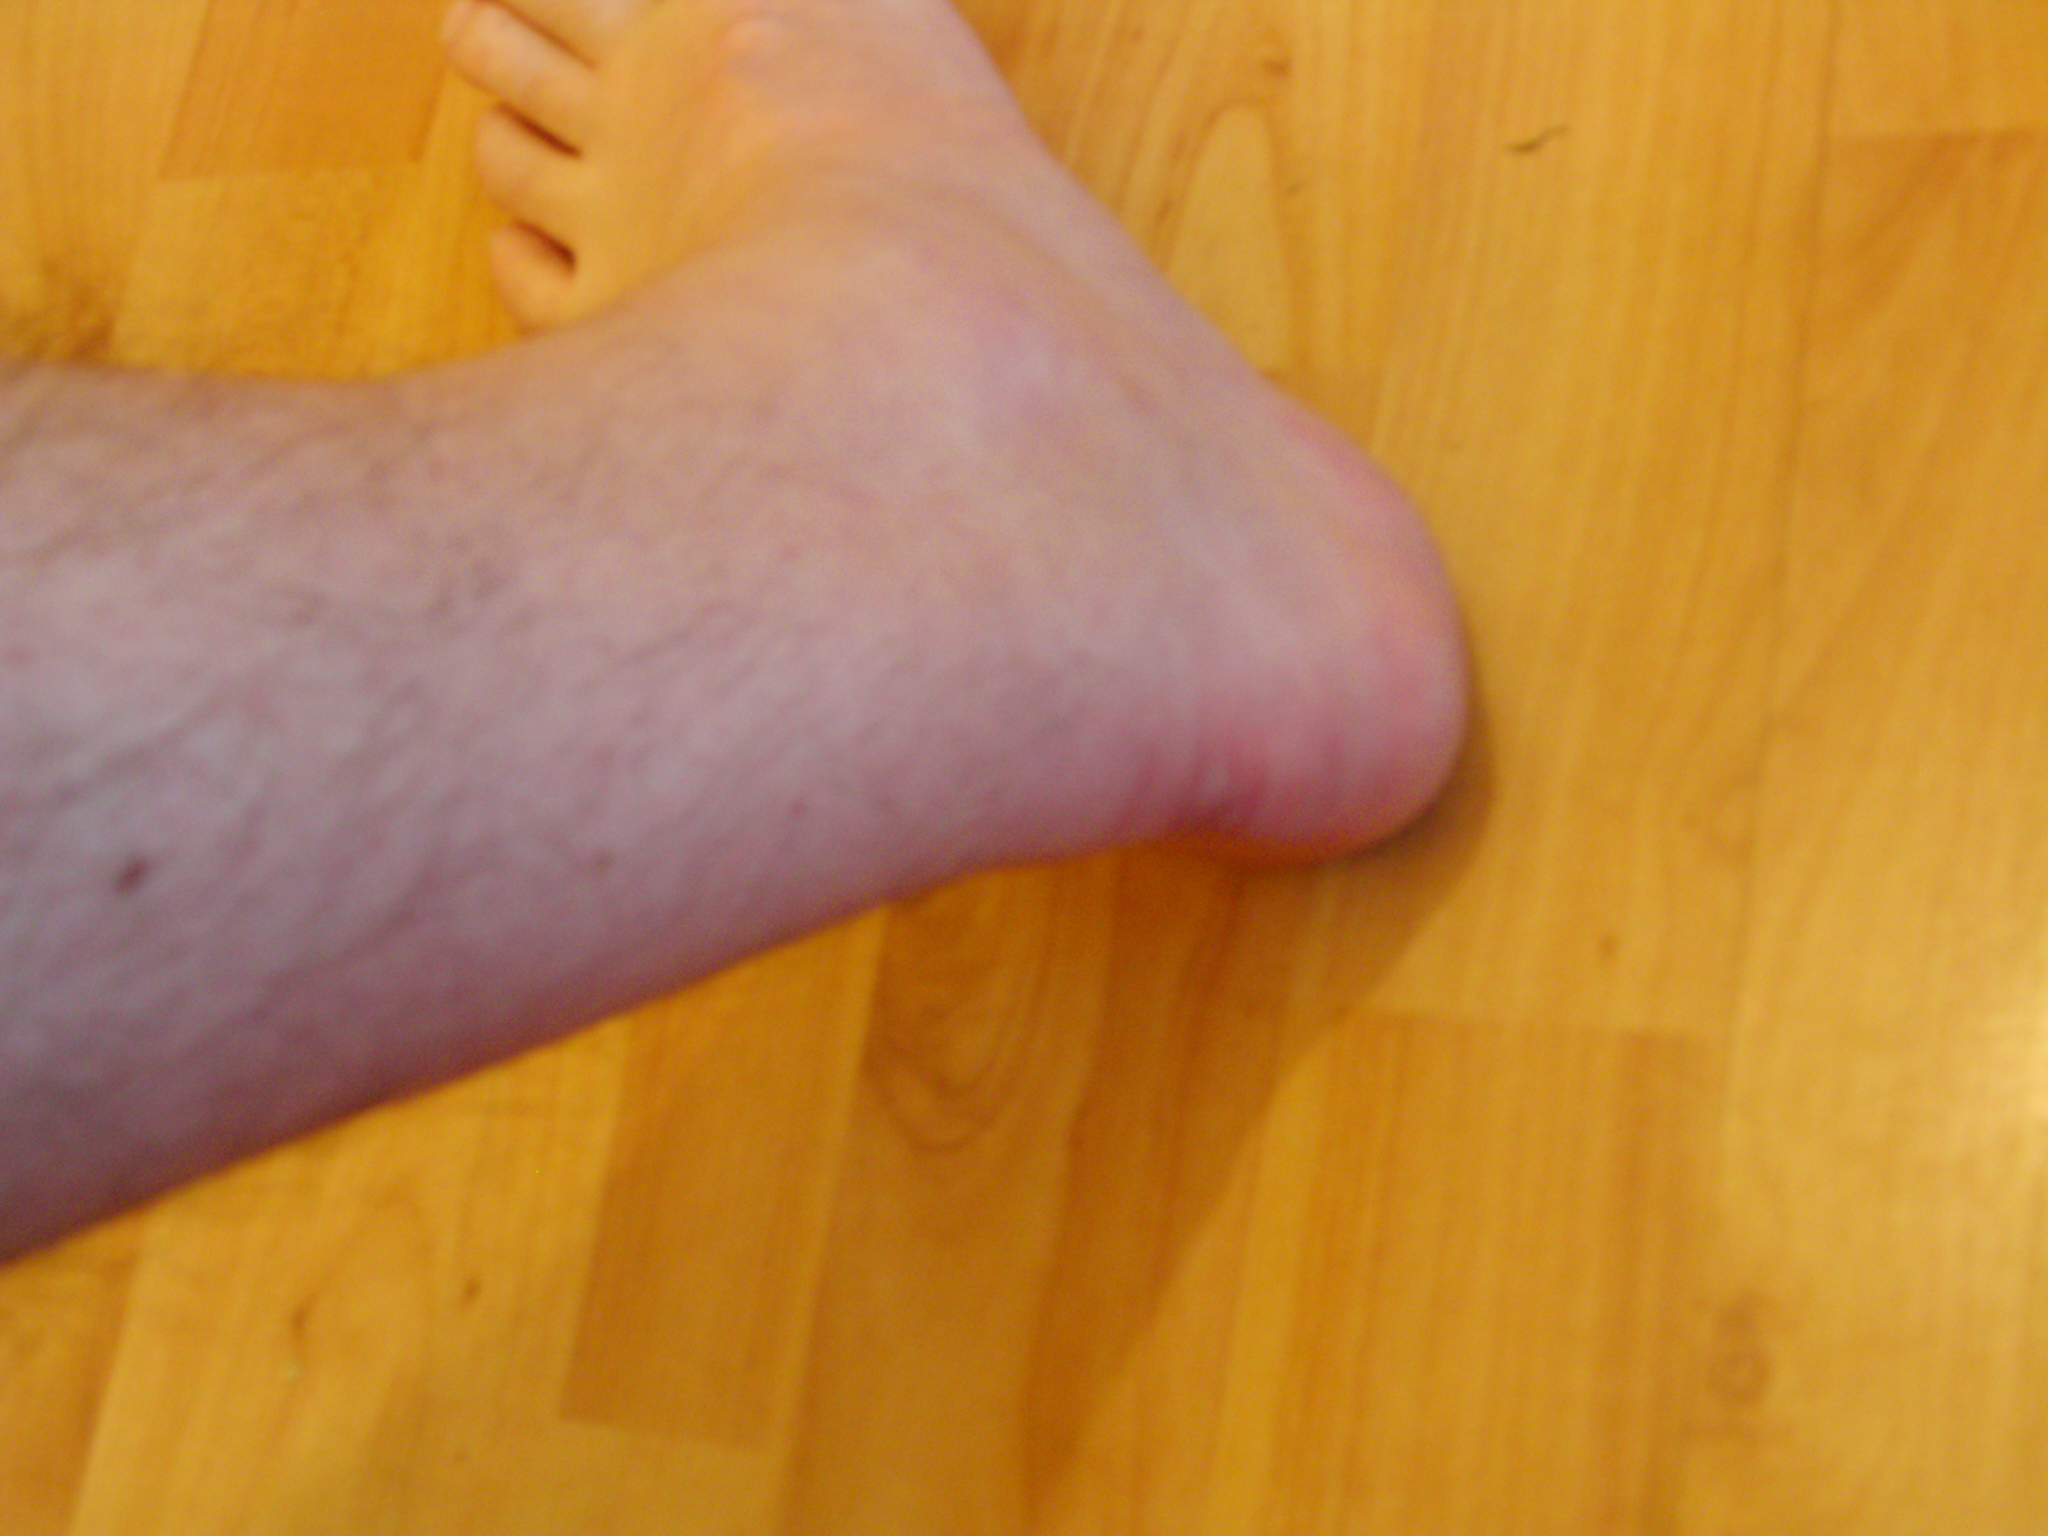 Left ankle 13.05.08